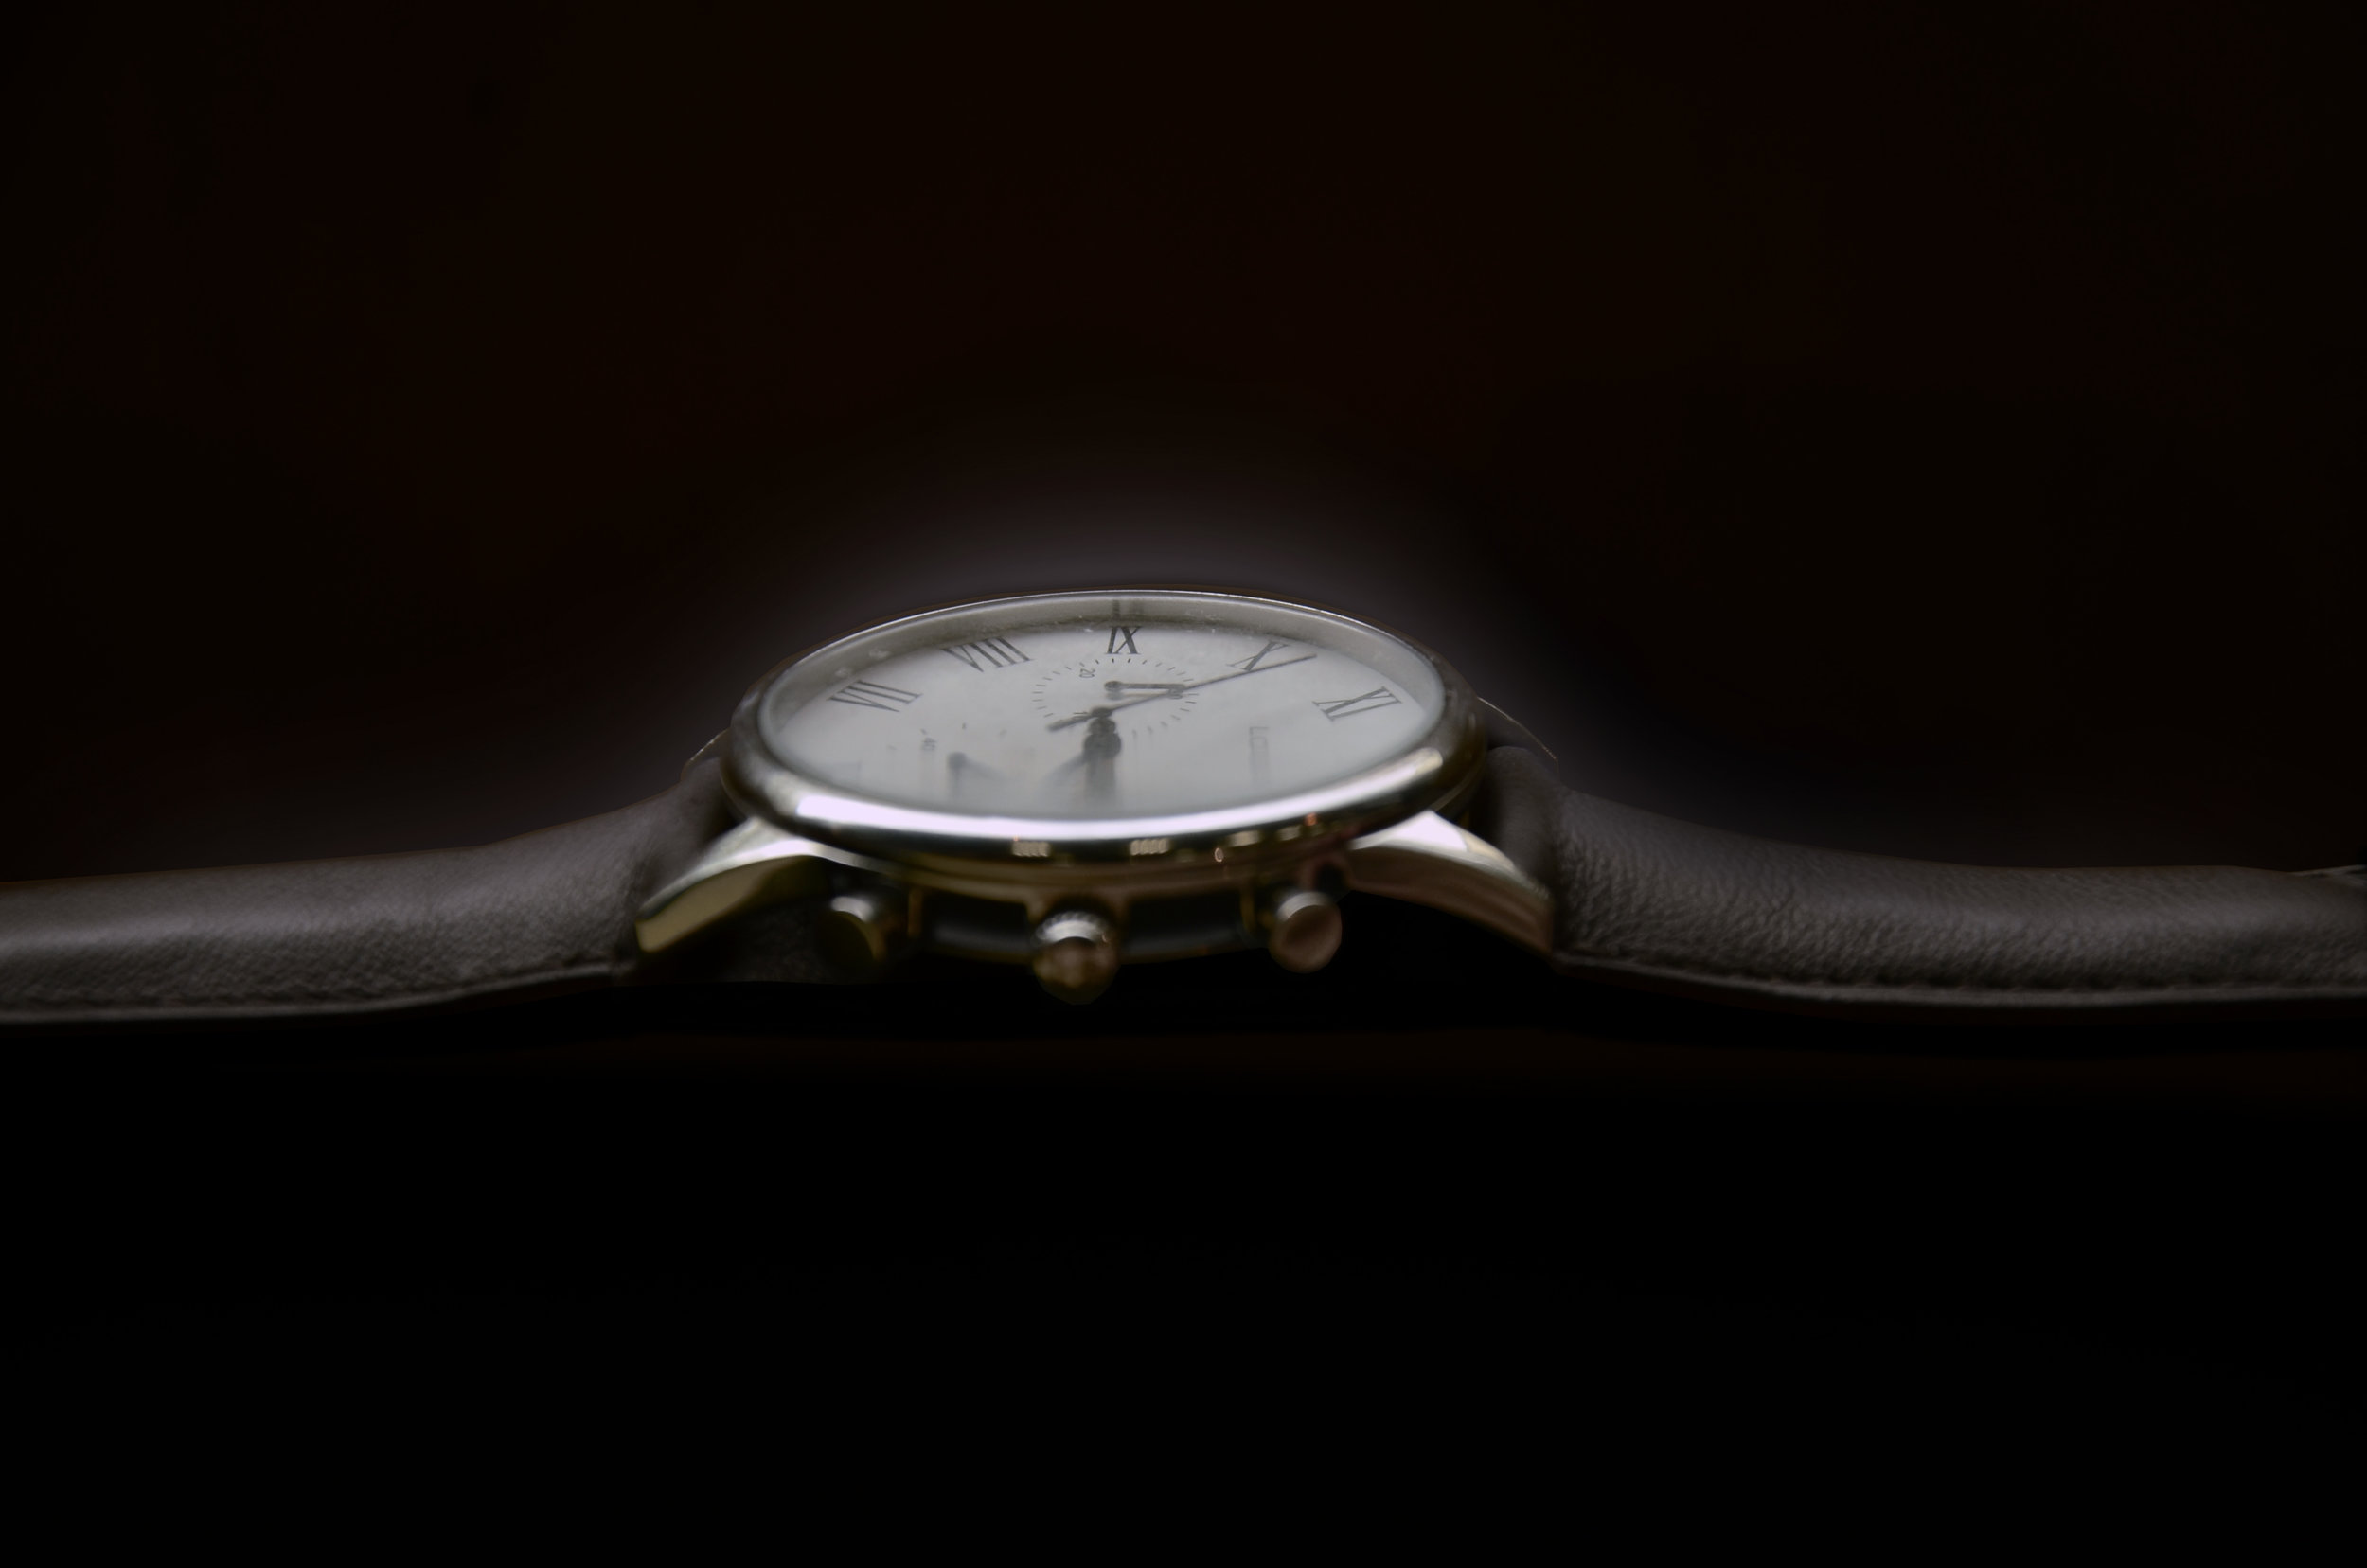 classi-leather-strap-with-watch-face_28426154914_o.jpg